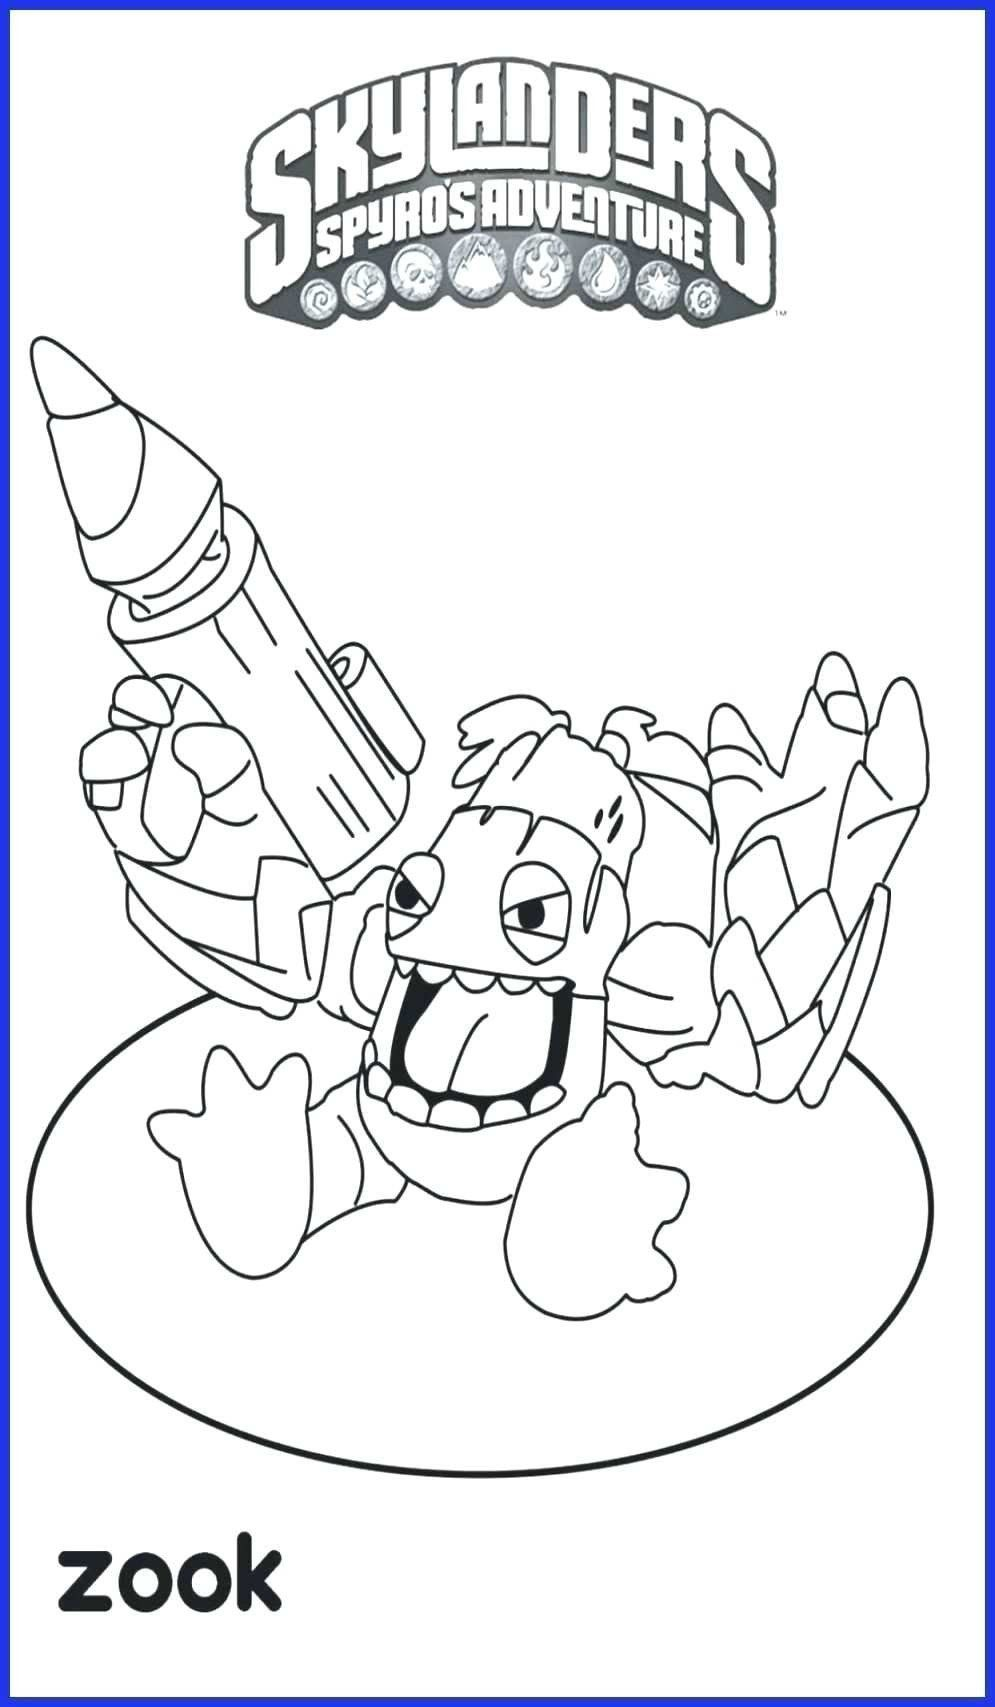 trolls movie coloring pages fresh of dreamworks trolls